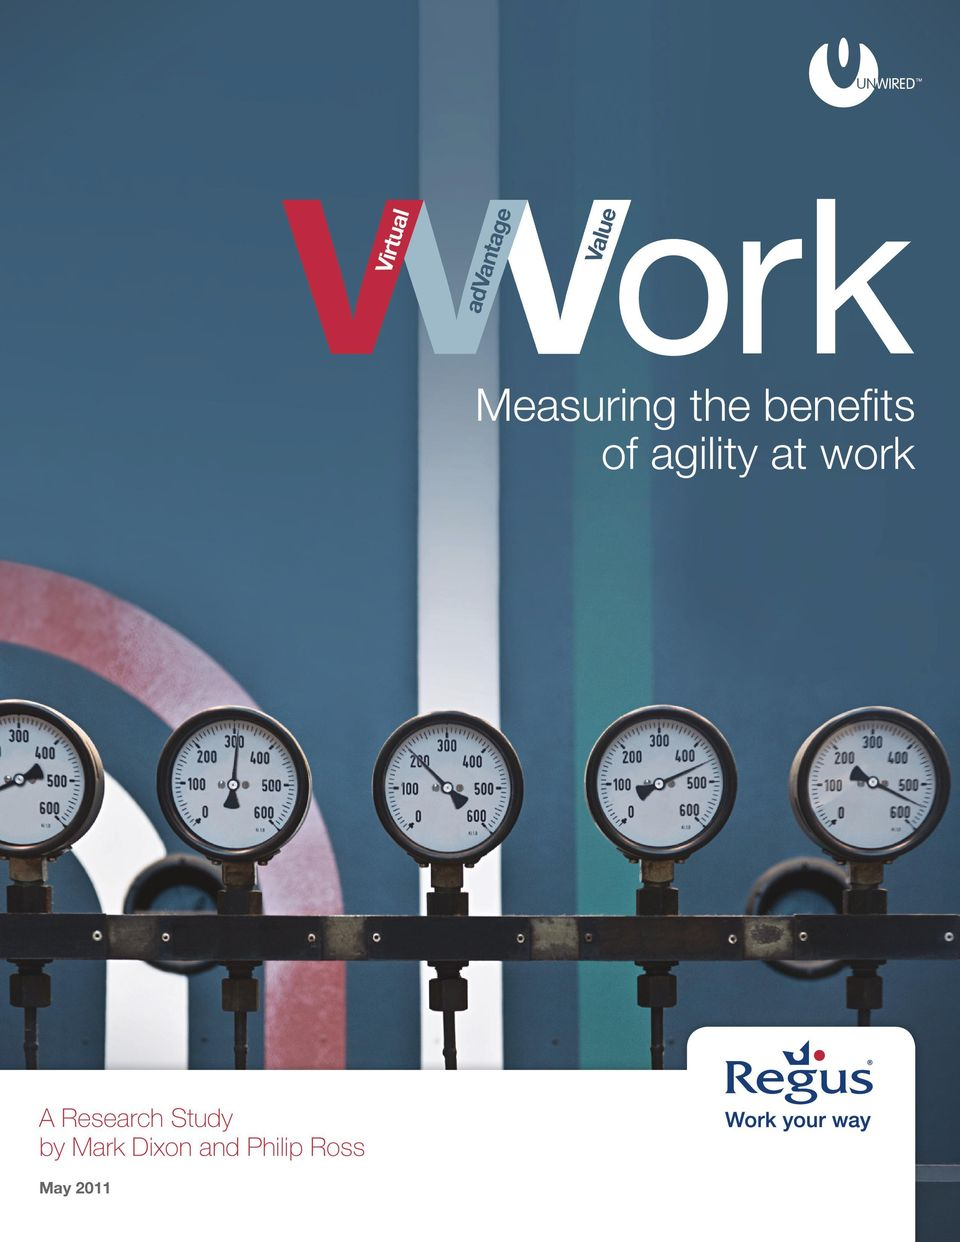 agility at work A Research